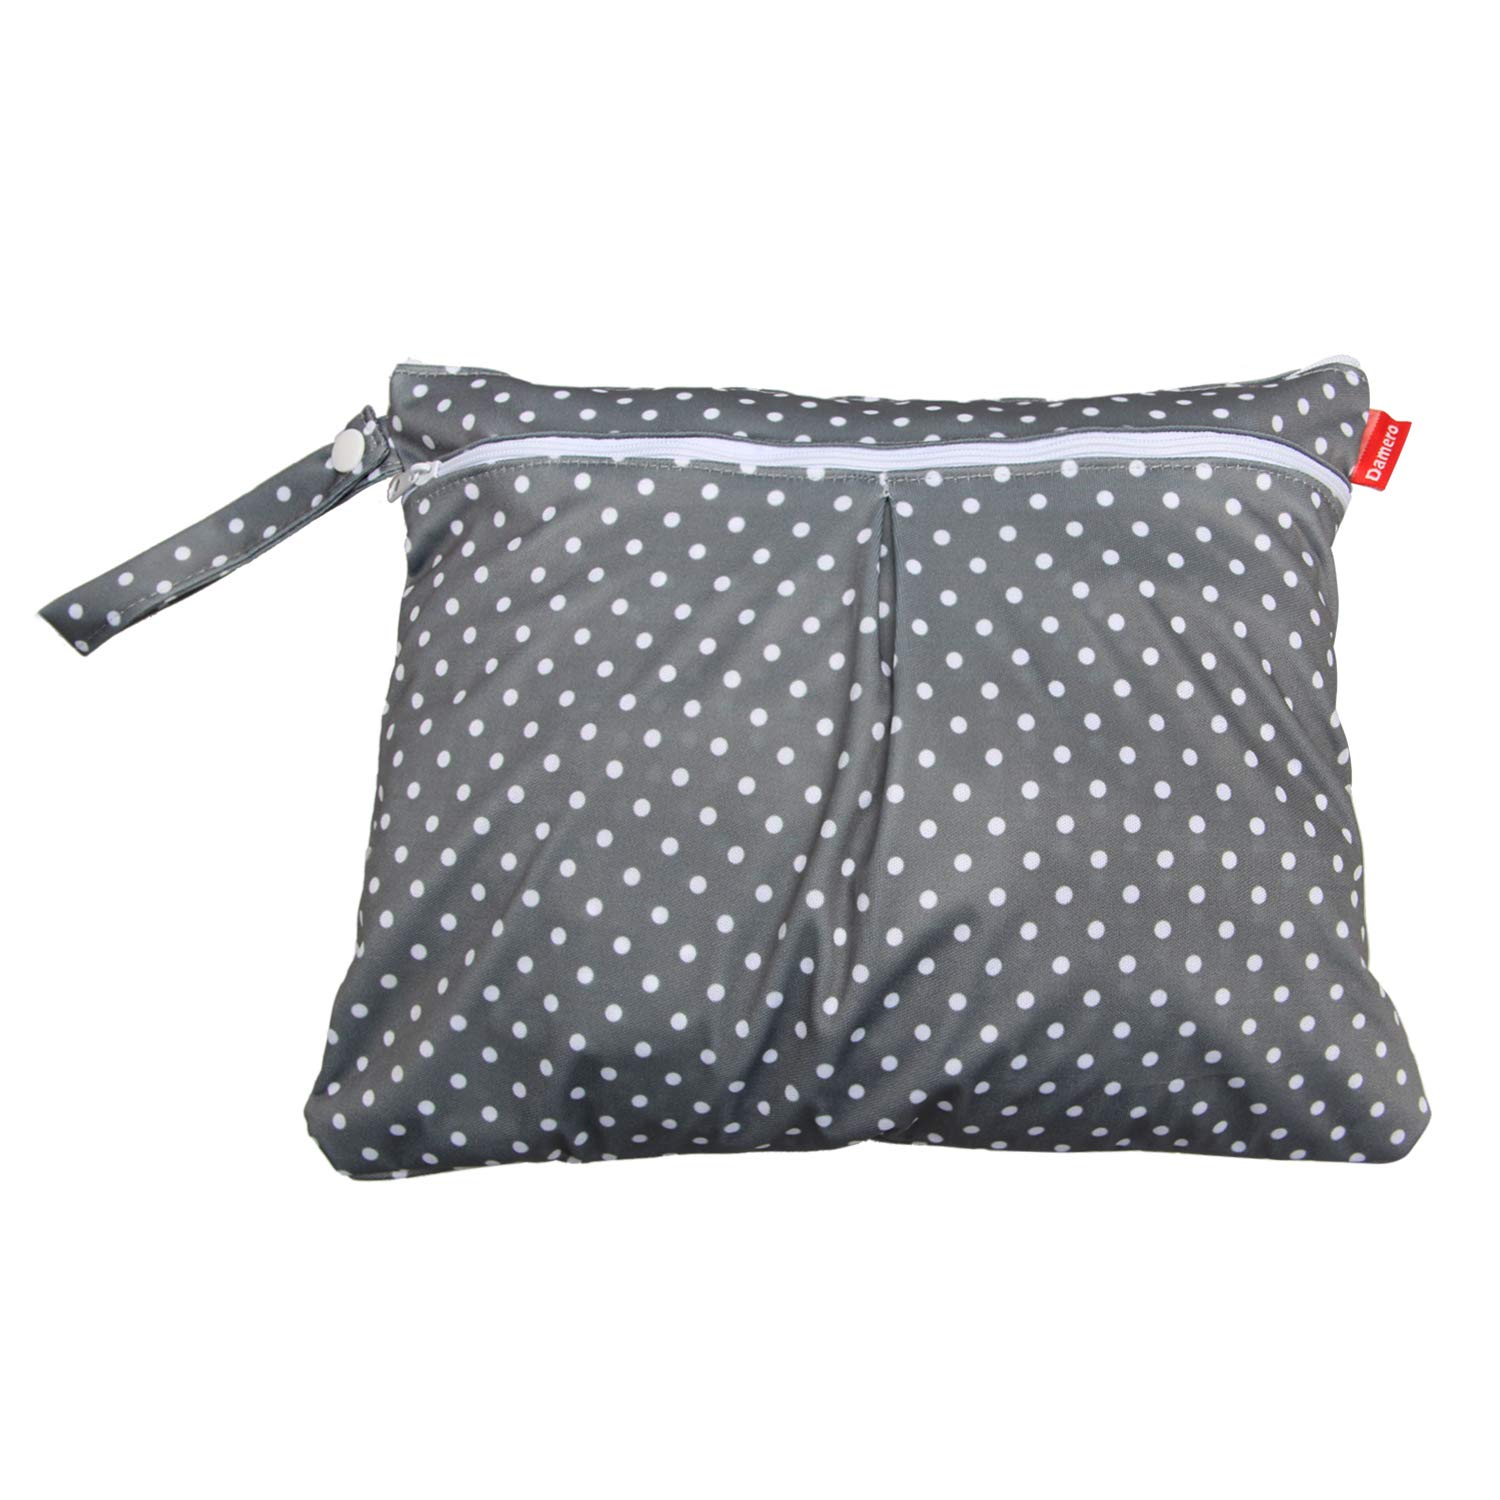 Travel Wet and Dry Bag with Handle for Cloth Diaper Swimsuit and More Clothes Reusable and Water-resistant Medium,Summer style Pumping Parts Damero Cloth Diaper Wet Dry Bags